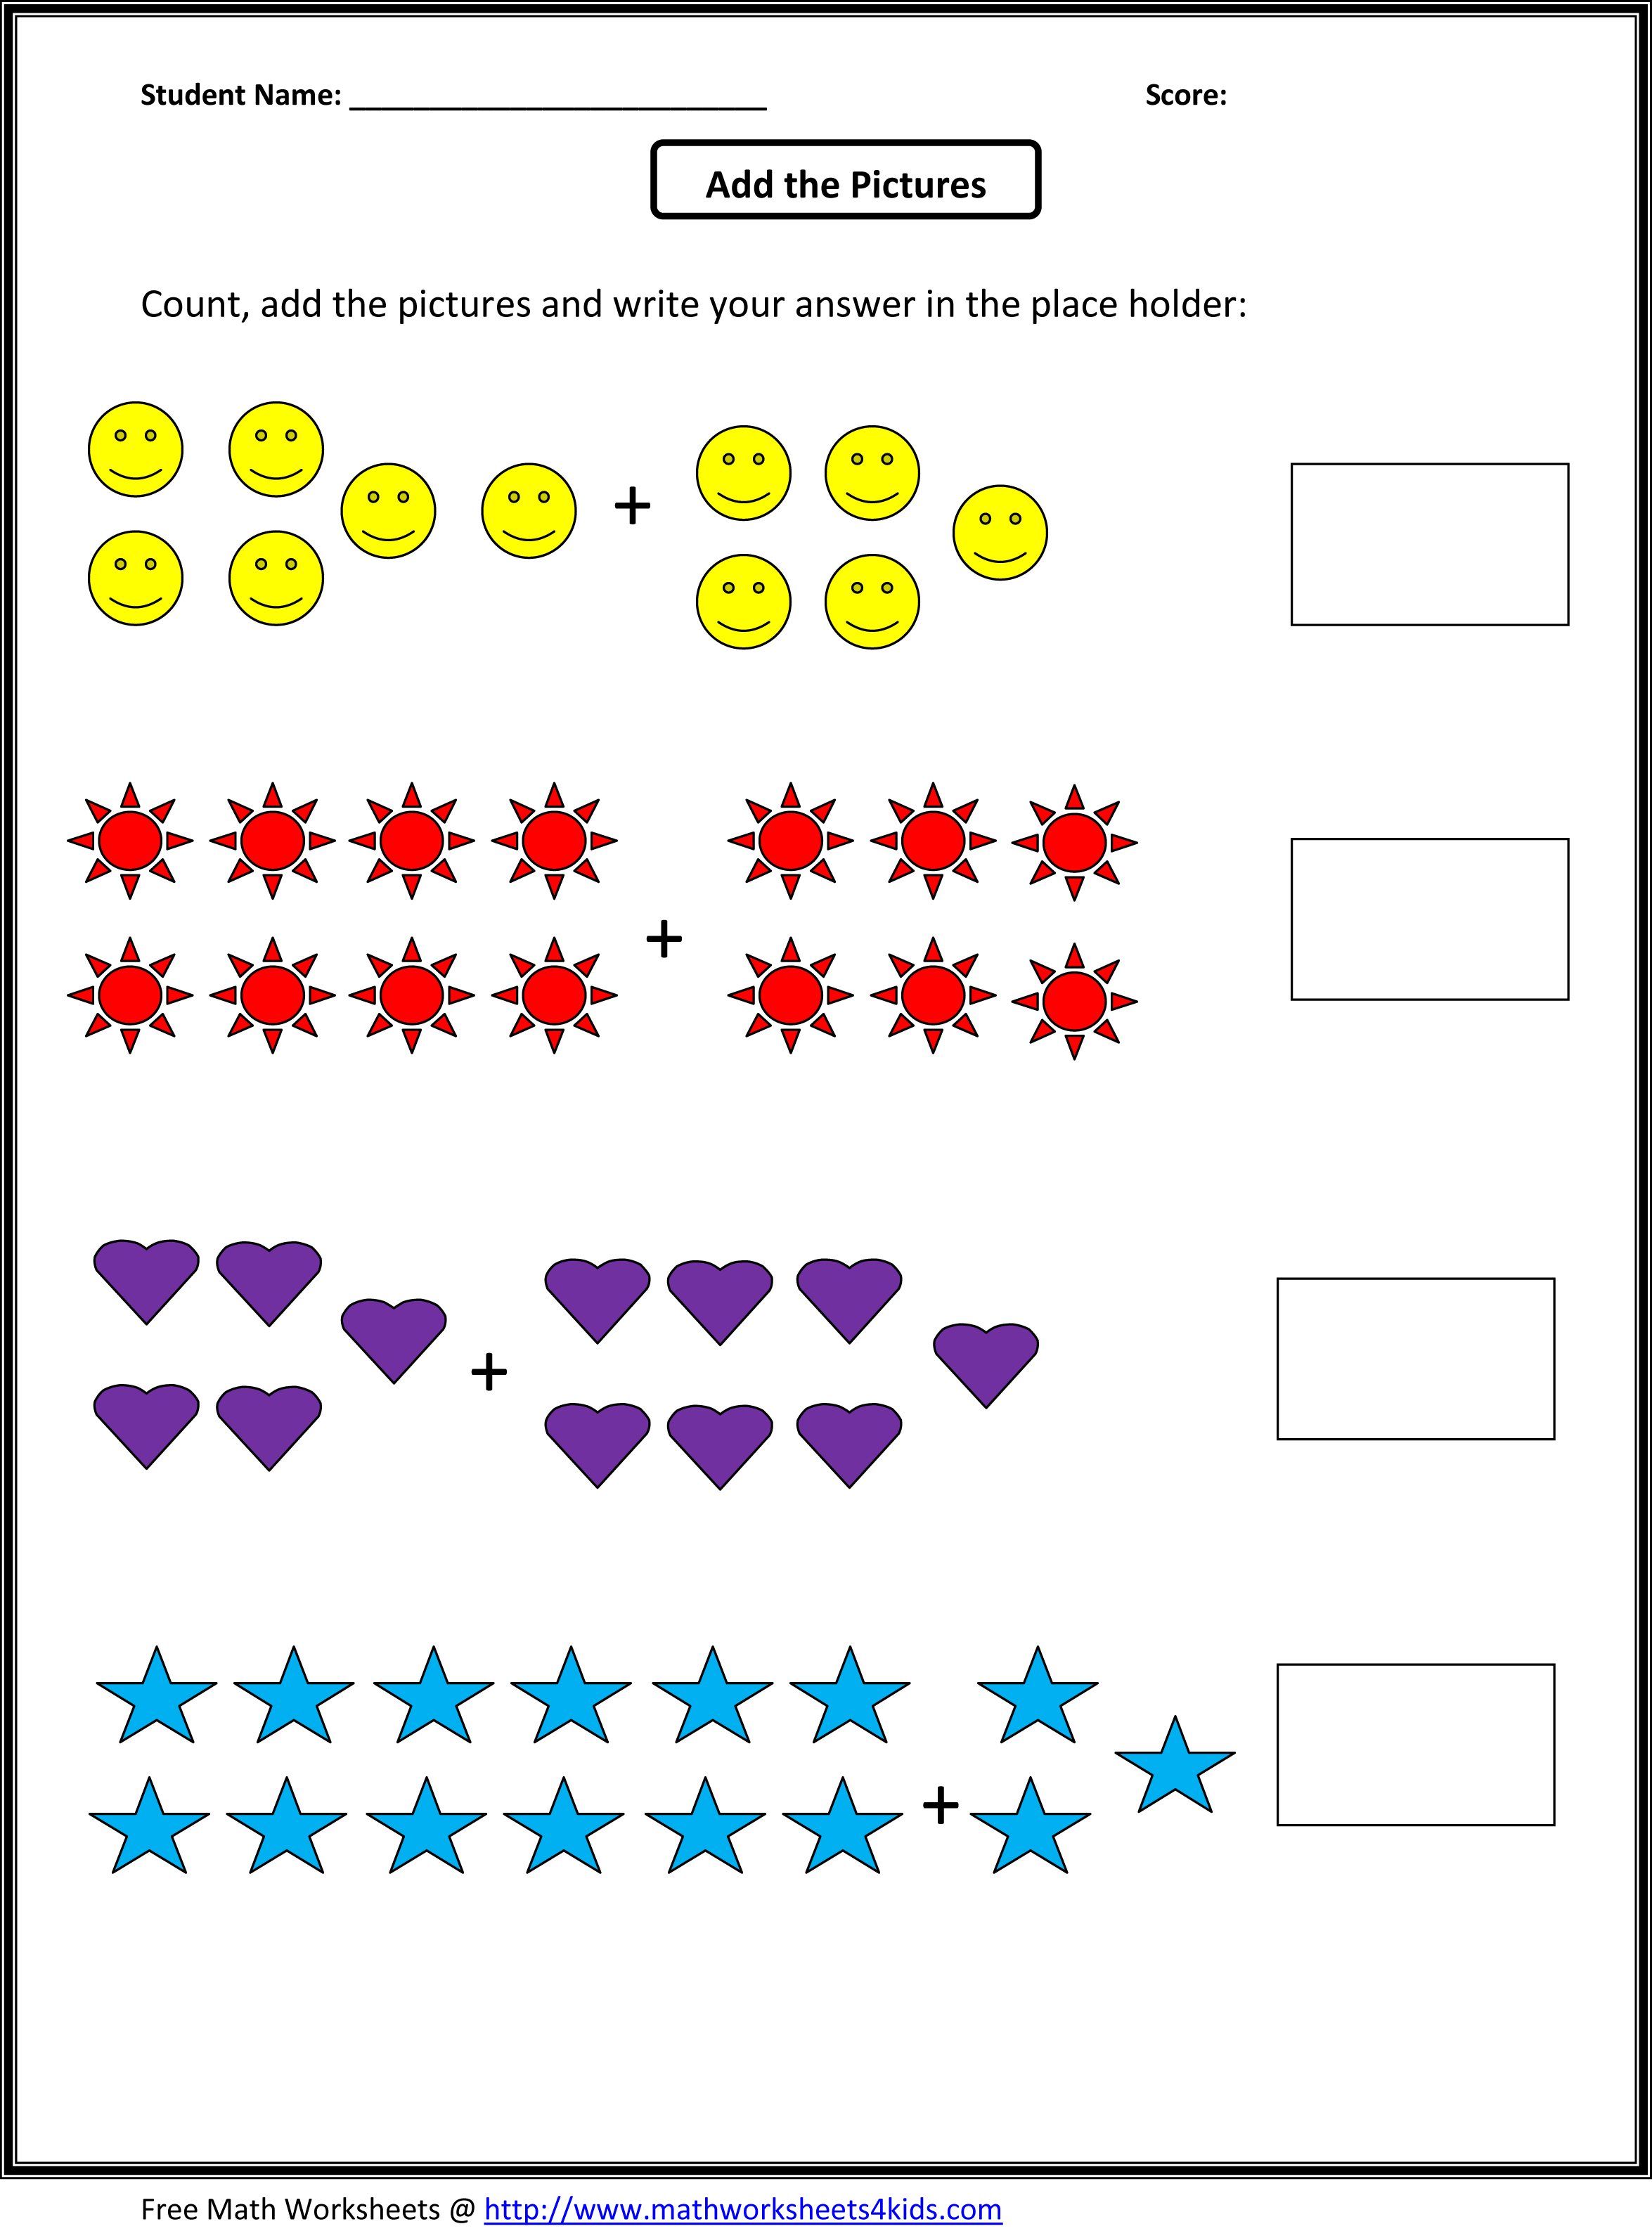 Proatmealus  Seductive Grade  Maths Worksheet  Reocurent With Great Math Worksheets For St Grade Free  Reocurent With Alluring Adjectives Worksheet Nd Grade Also Dr Seuss Worksheet In Addition Geometry Reflection Worksheet And Life Skills Worksheets Free As Well As Solutions Worksheet Chemistry Additionally Primary Source Worksheet From Reocurentcom With Proatmealus  Great Grade  Maths Worksheet  Reocurent With Alluring Math Worksheets For St Grade Free  Reocurent And Seductive Adjectives Worksheet Nd Grade Also Dr Seuss Worksheet In Addition Geometry Reflection Worksheet From Reocurentcom